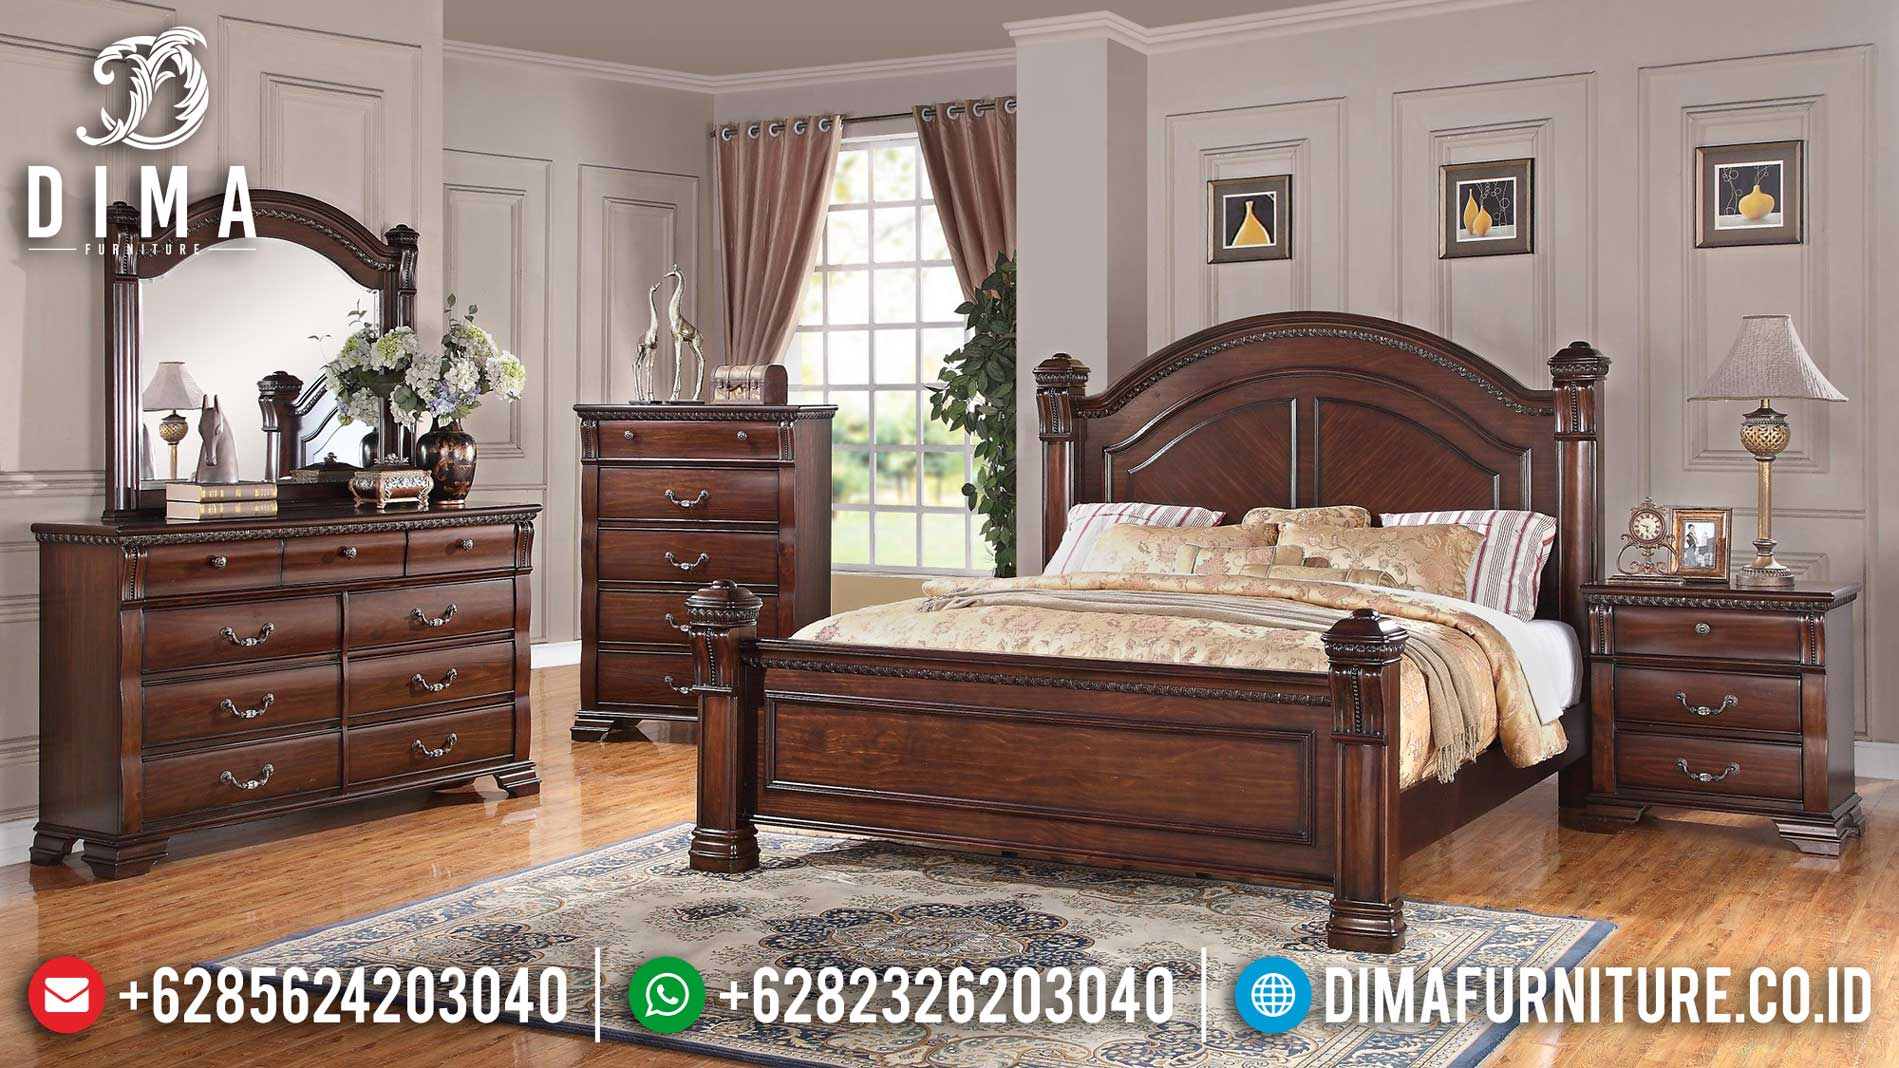 Kamar Set Minimalis Kayu Jati Natural Classic Furniture Jepara Luxury TTJ-1184